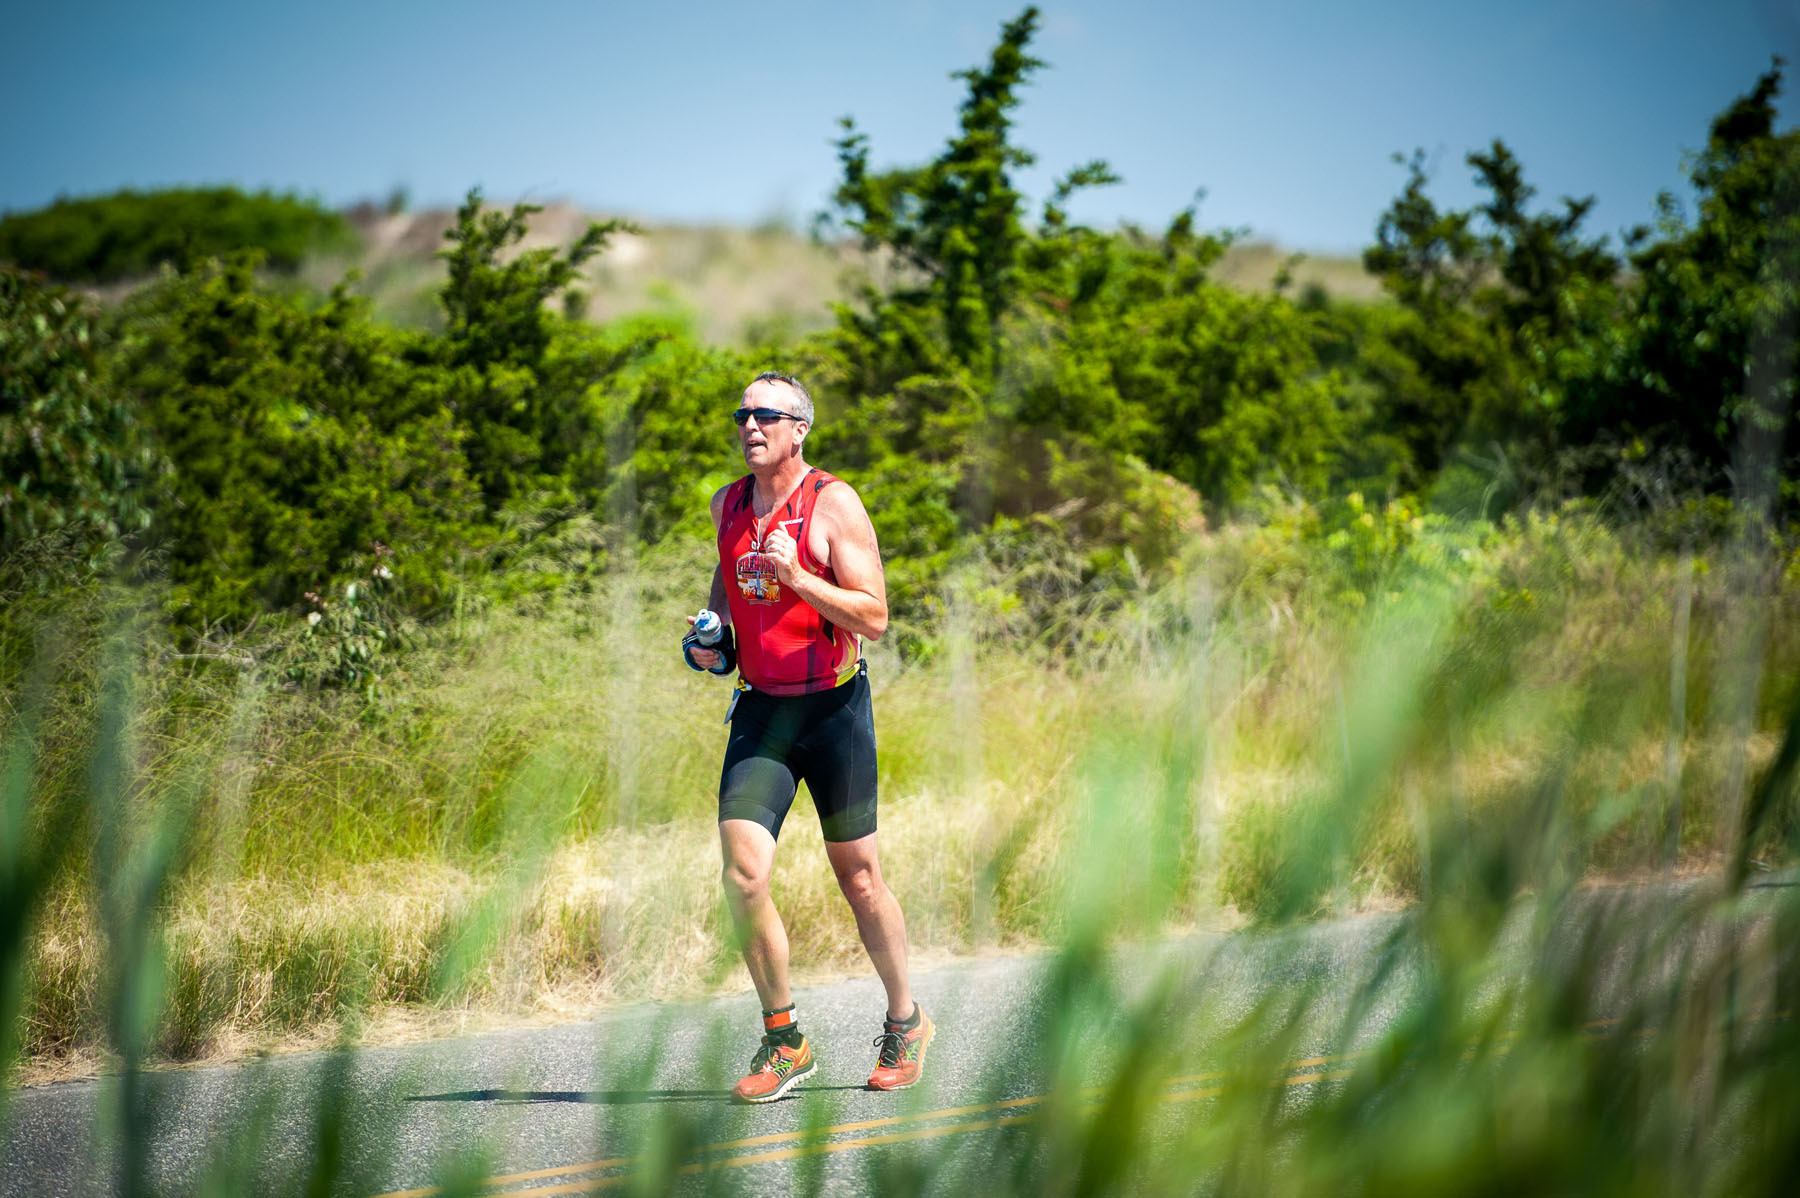 Tranquil Run Course  - Escape The Cape Triathlon